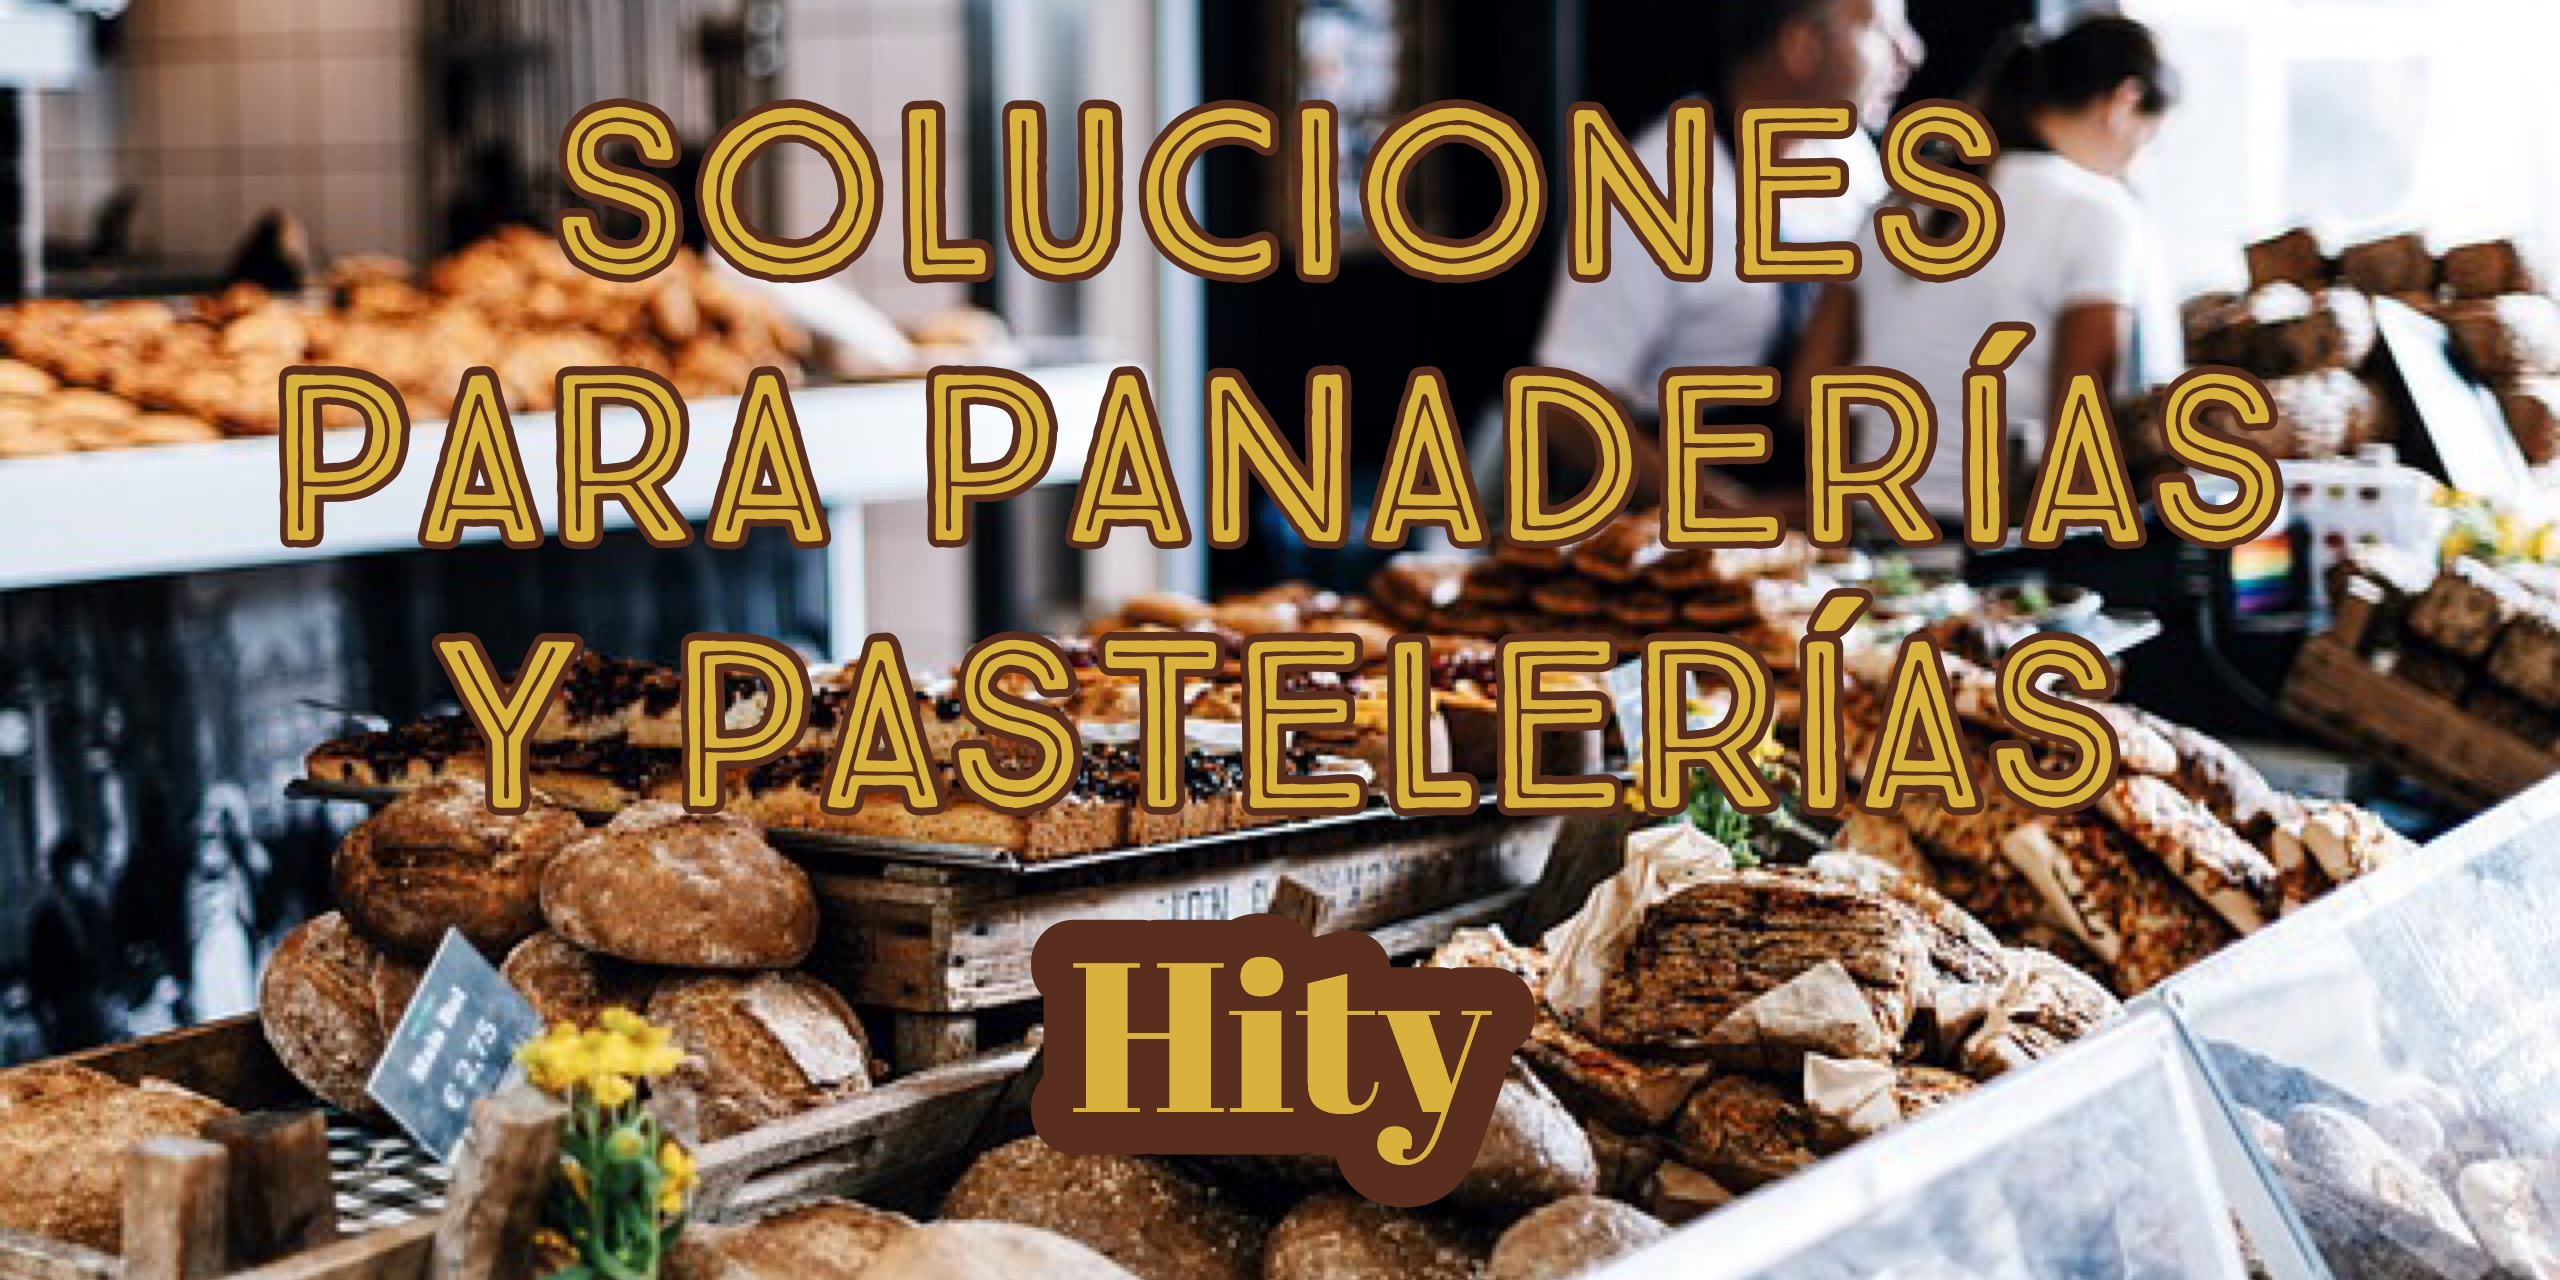 http://hity.es/wp-content/uploads/2018/11/panaderia.jpg